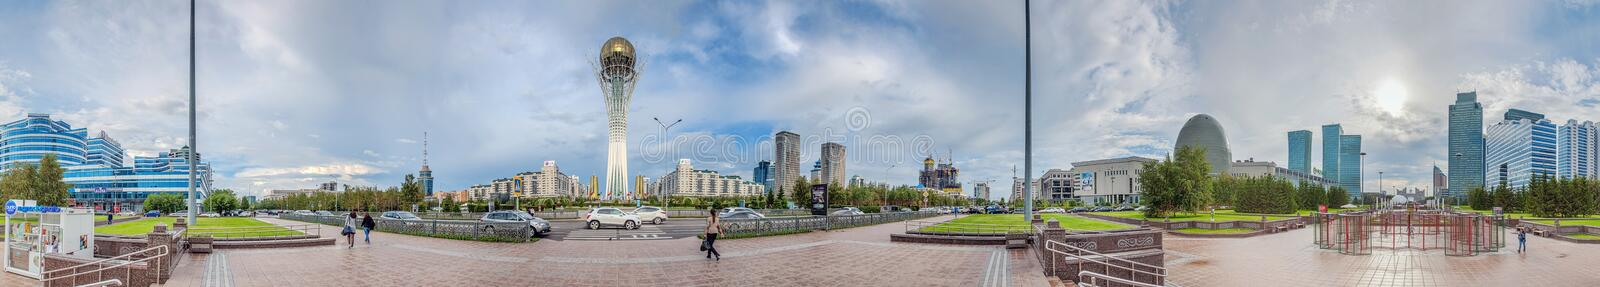 ASTANA, KAZAKHSTAN - JULY 1, 2016: Panorama of 180 degrees from the center of Astana. royalty free stock photos